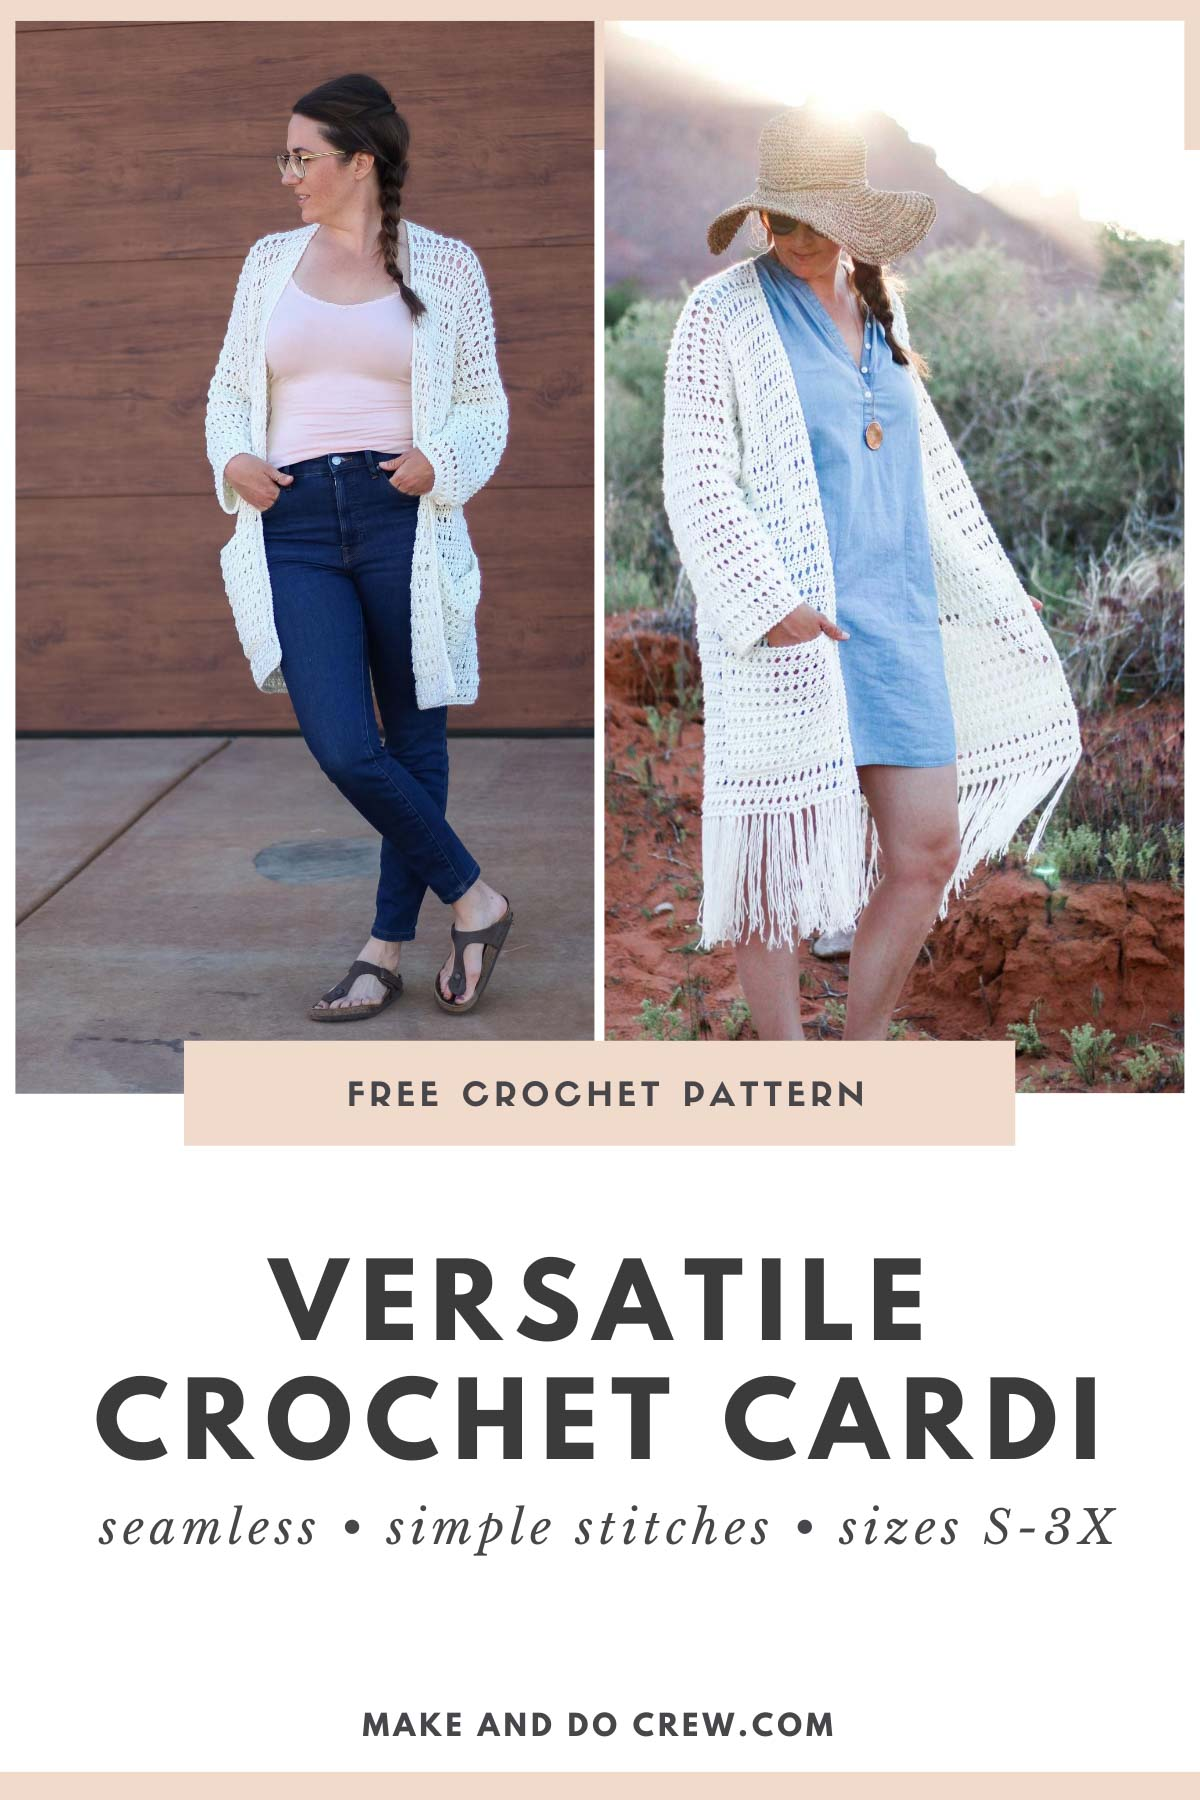 Two contrasting images of a woman wearing a crochet long cardigan styled two different ways. One sweater has boho fringe and one has a more polished look.